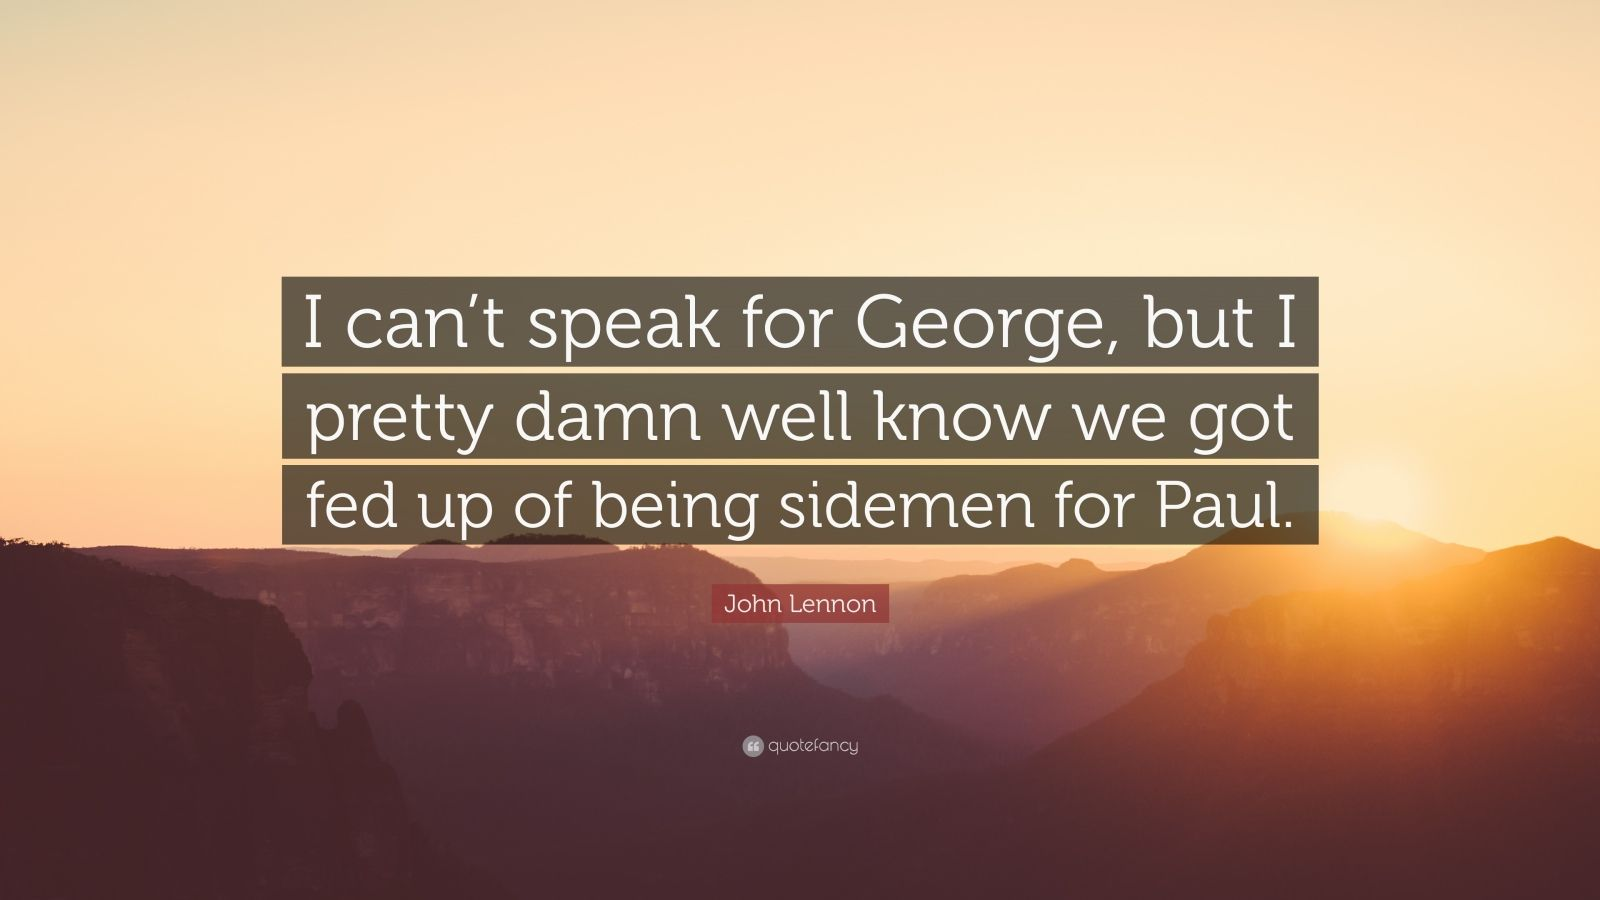 """John Lennon Quote: """"I can't speak for George, but I pretty damn well know we got fed up of being sidemen for Paul."""""""